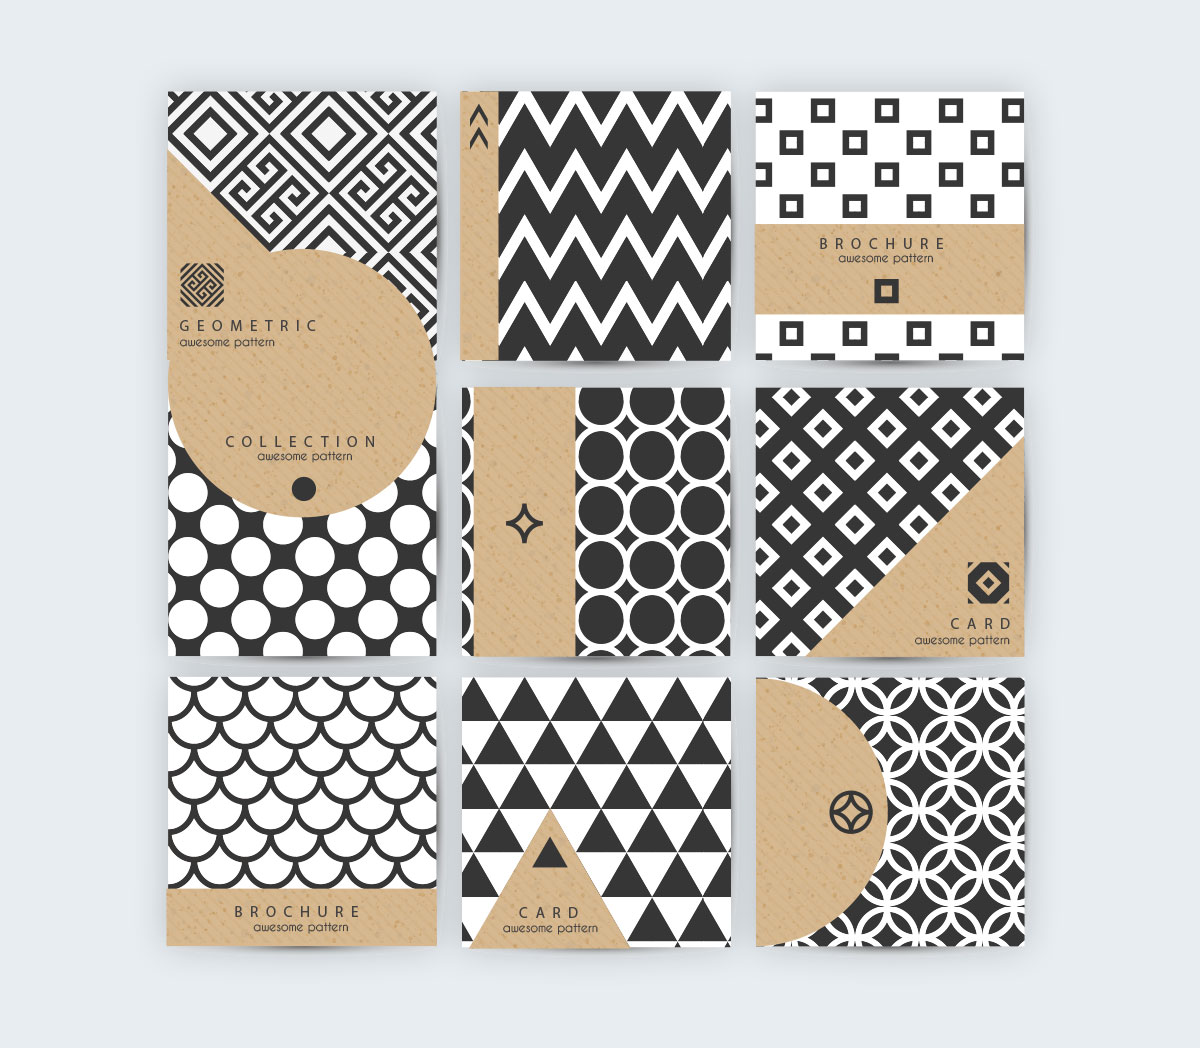 40-Brilliant-Geometric-Patterns-Use-Patterns-within-Patterns